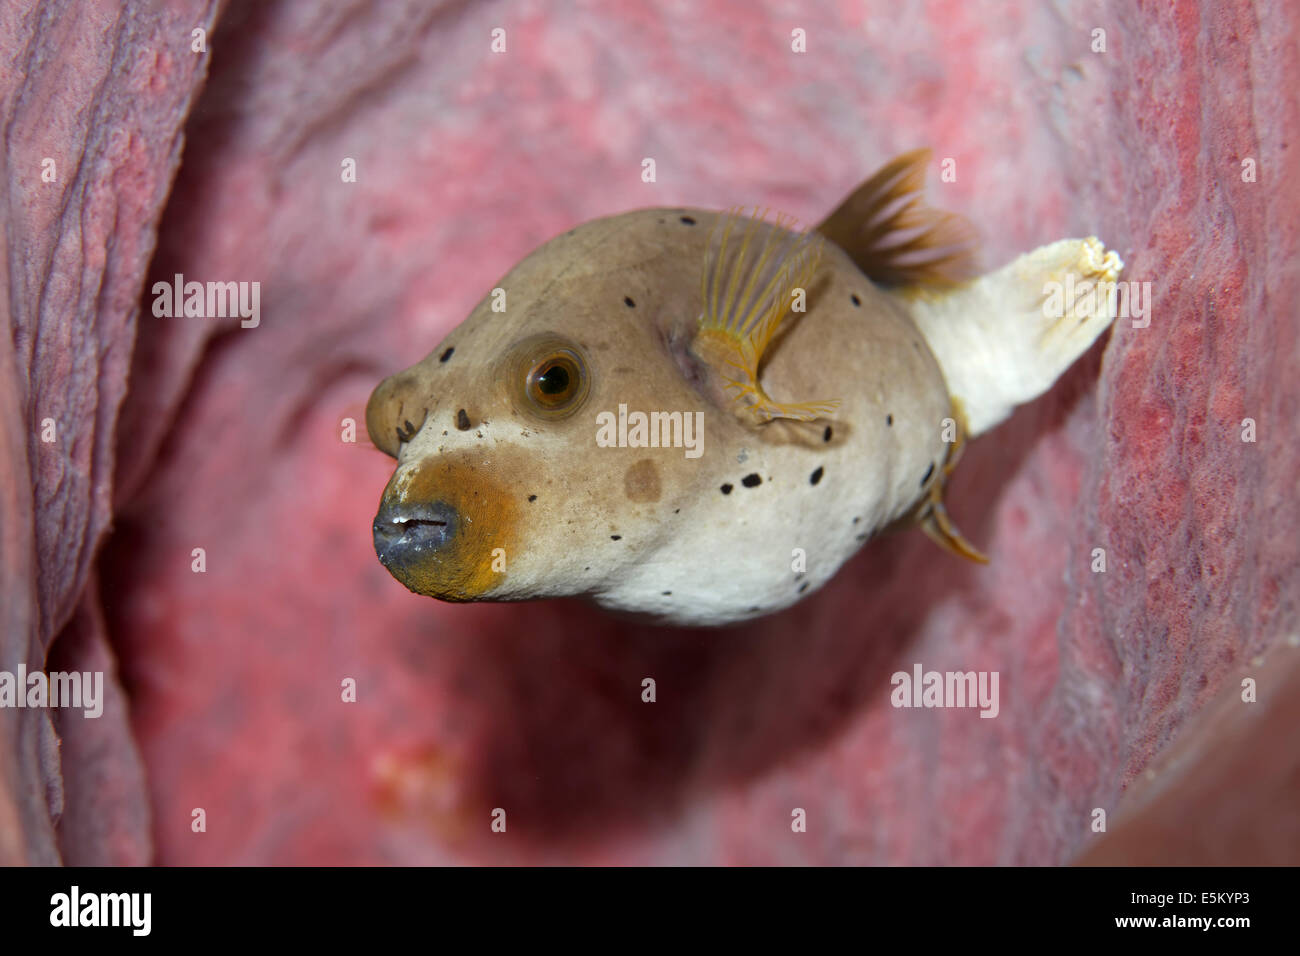 Blackspotted Puffer or Dog-faced Puffer (Arothron nigropunctatus), Great Barrier Reef, UNESCO World Natural Heritage Stock Photo